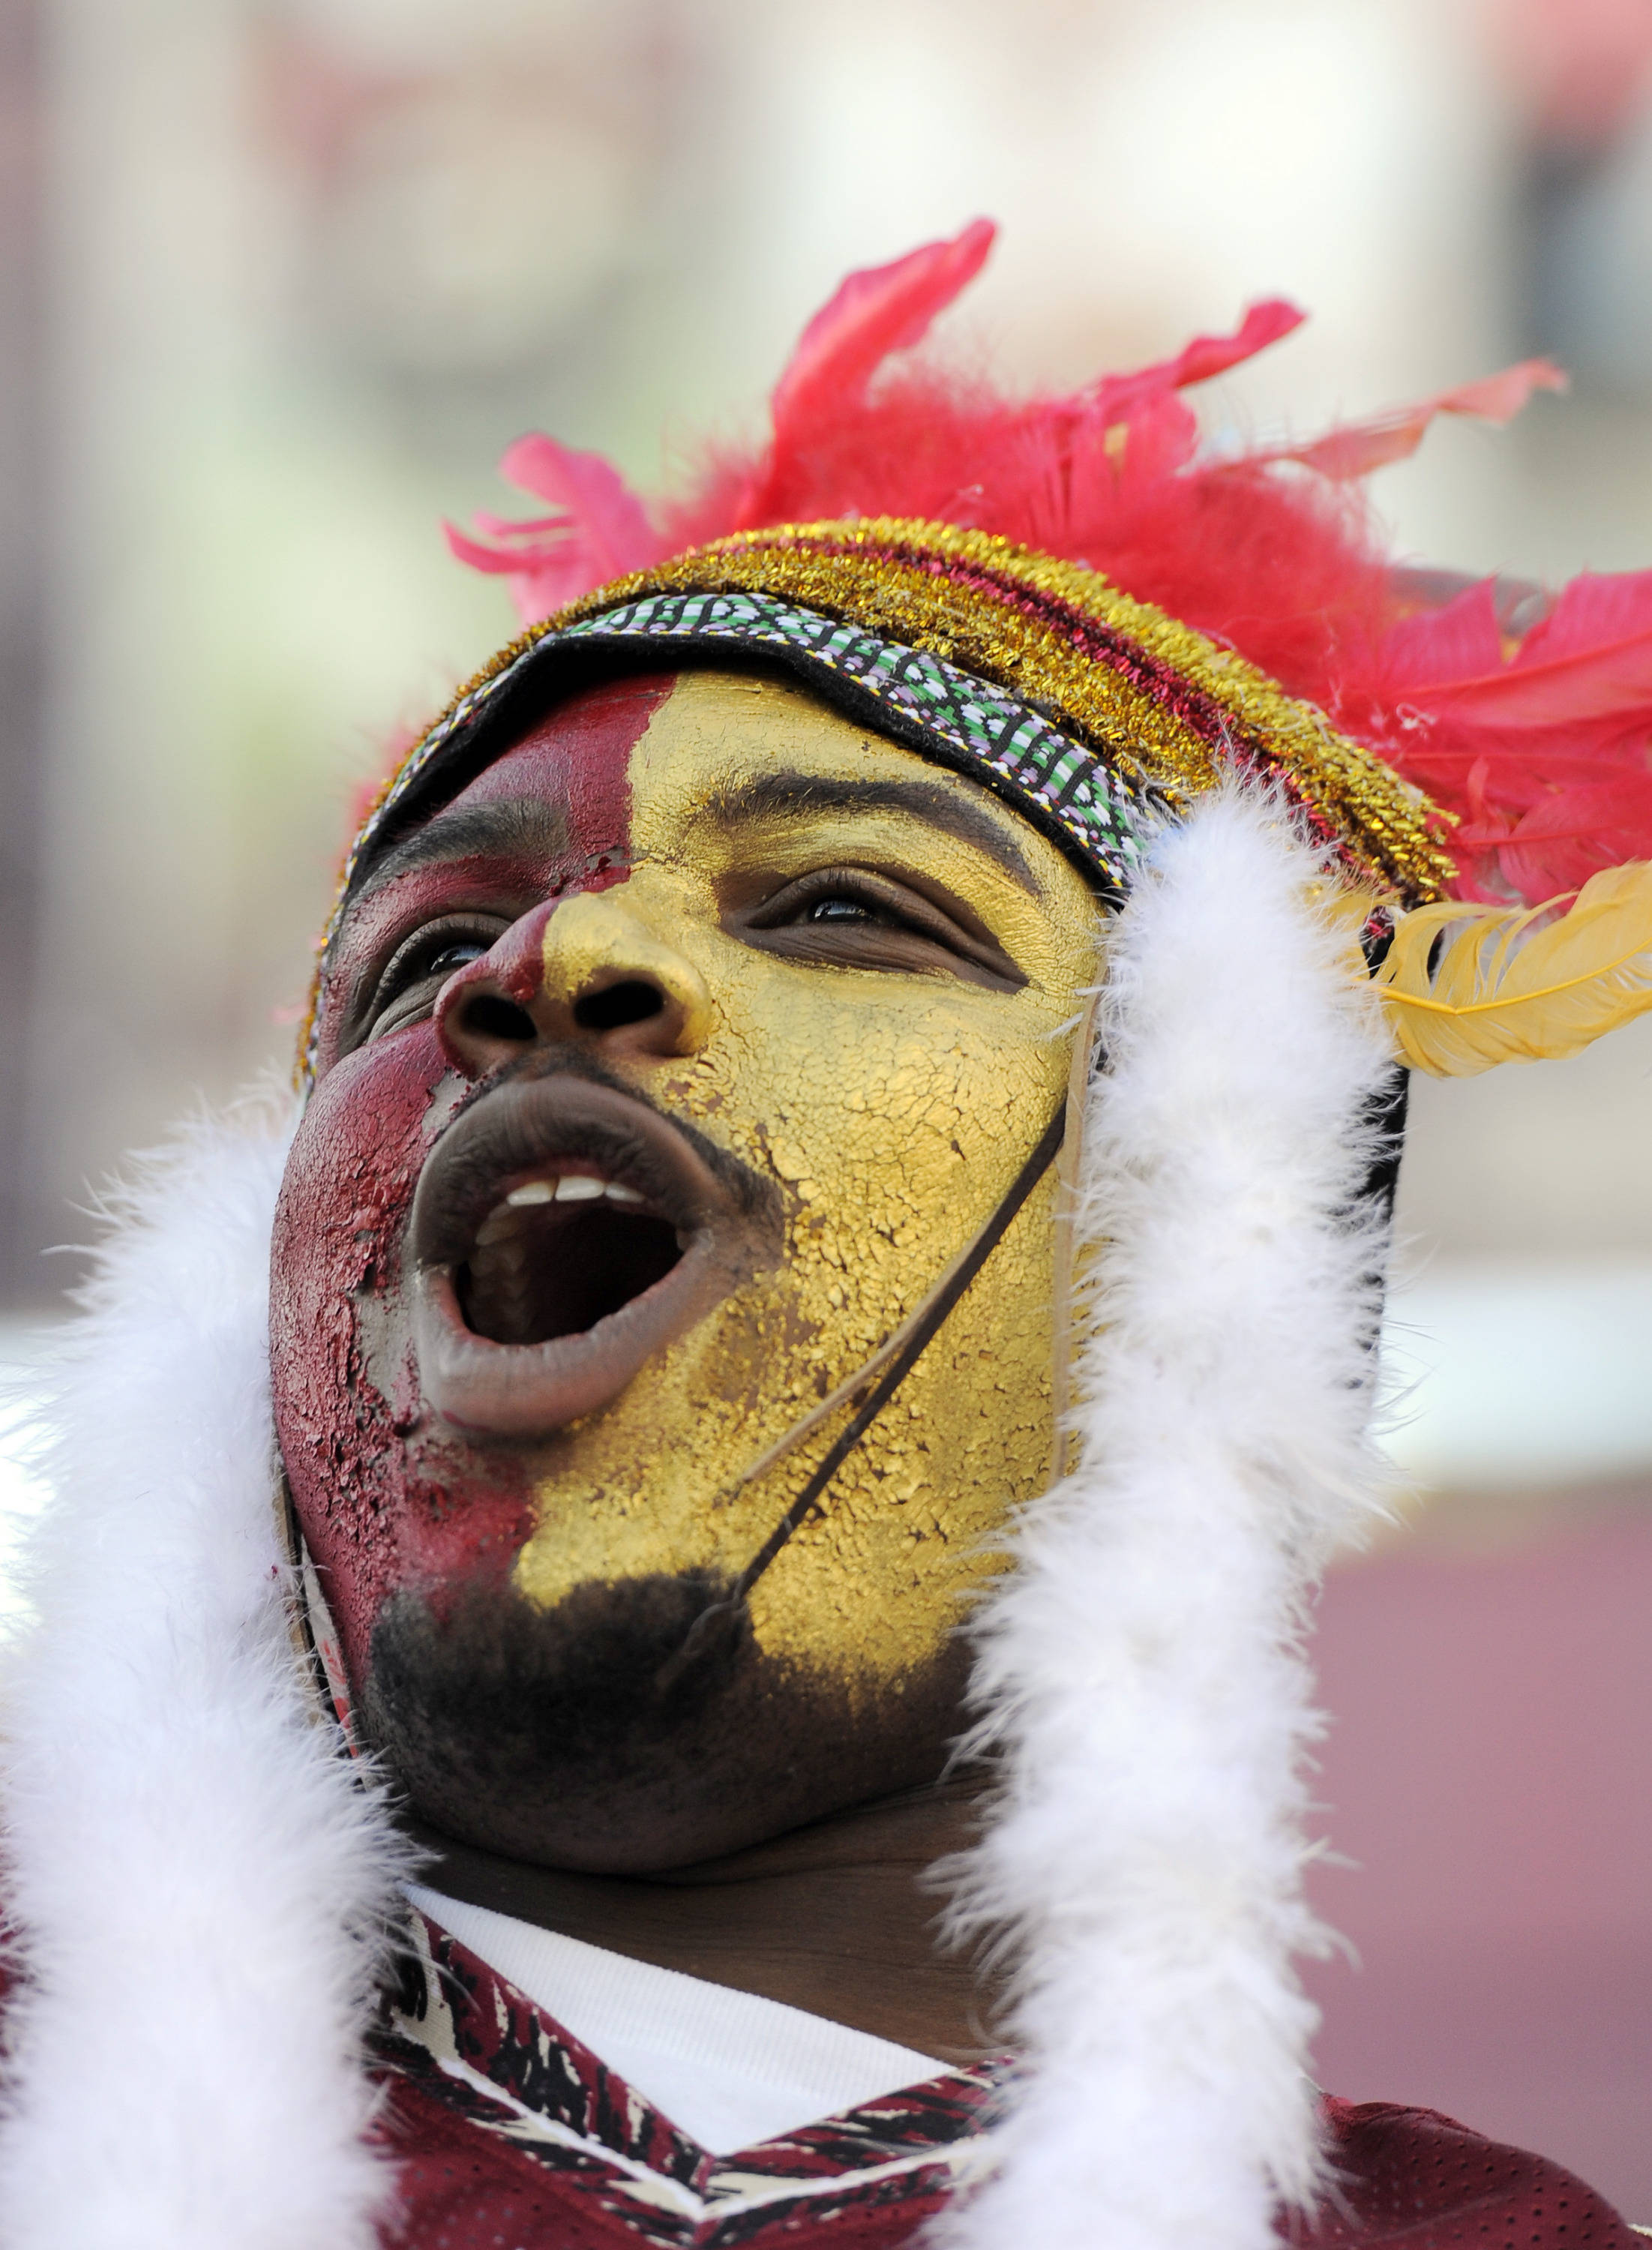 Florida State Seminoles fan Javar Bait cheers from the stands as student pour into the stadium before the game against the Miami Hurricanes at Doak Campbell Stadium. Mandatory Credit: John David Mercer-USA TODAY Sports